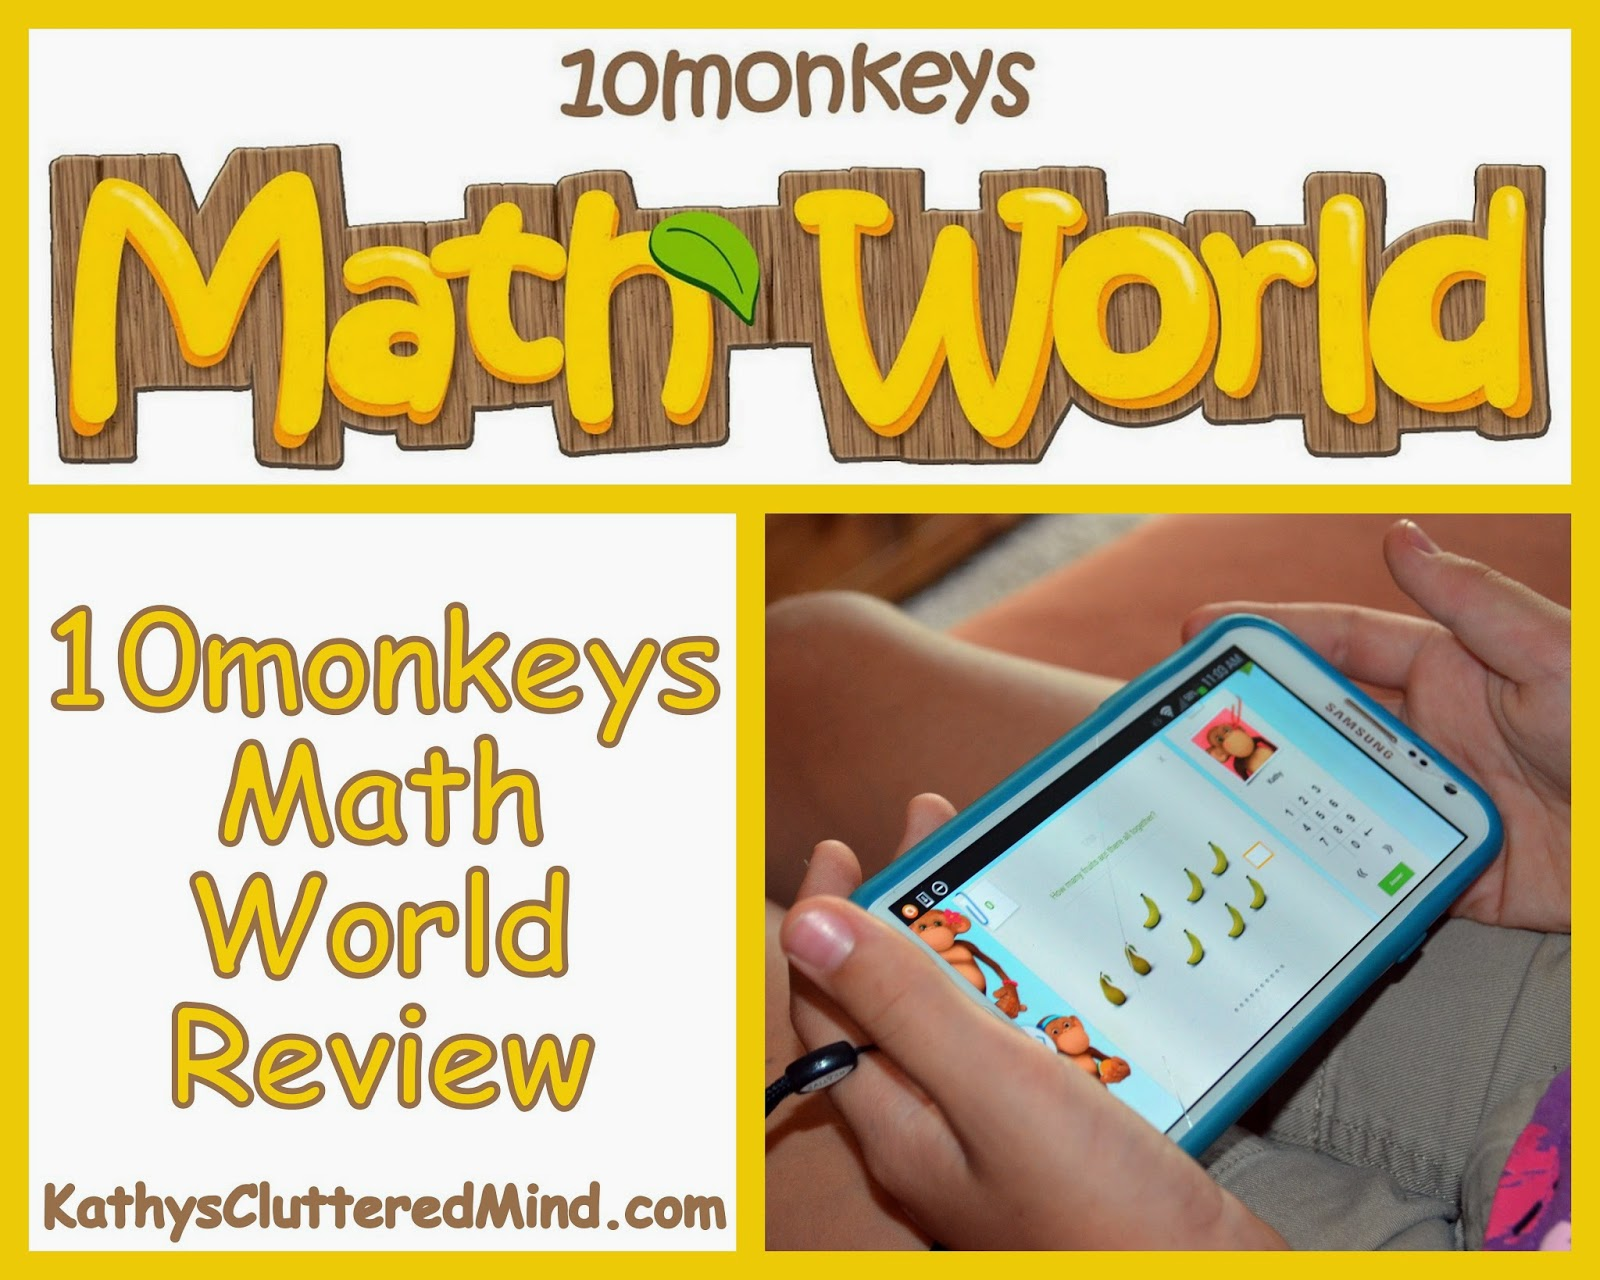 Kathys Cluttered Mind: 10Monkeys Math World Review - The Fun, Easy ...